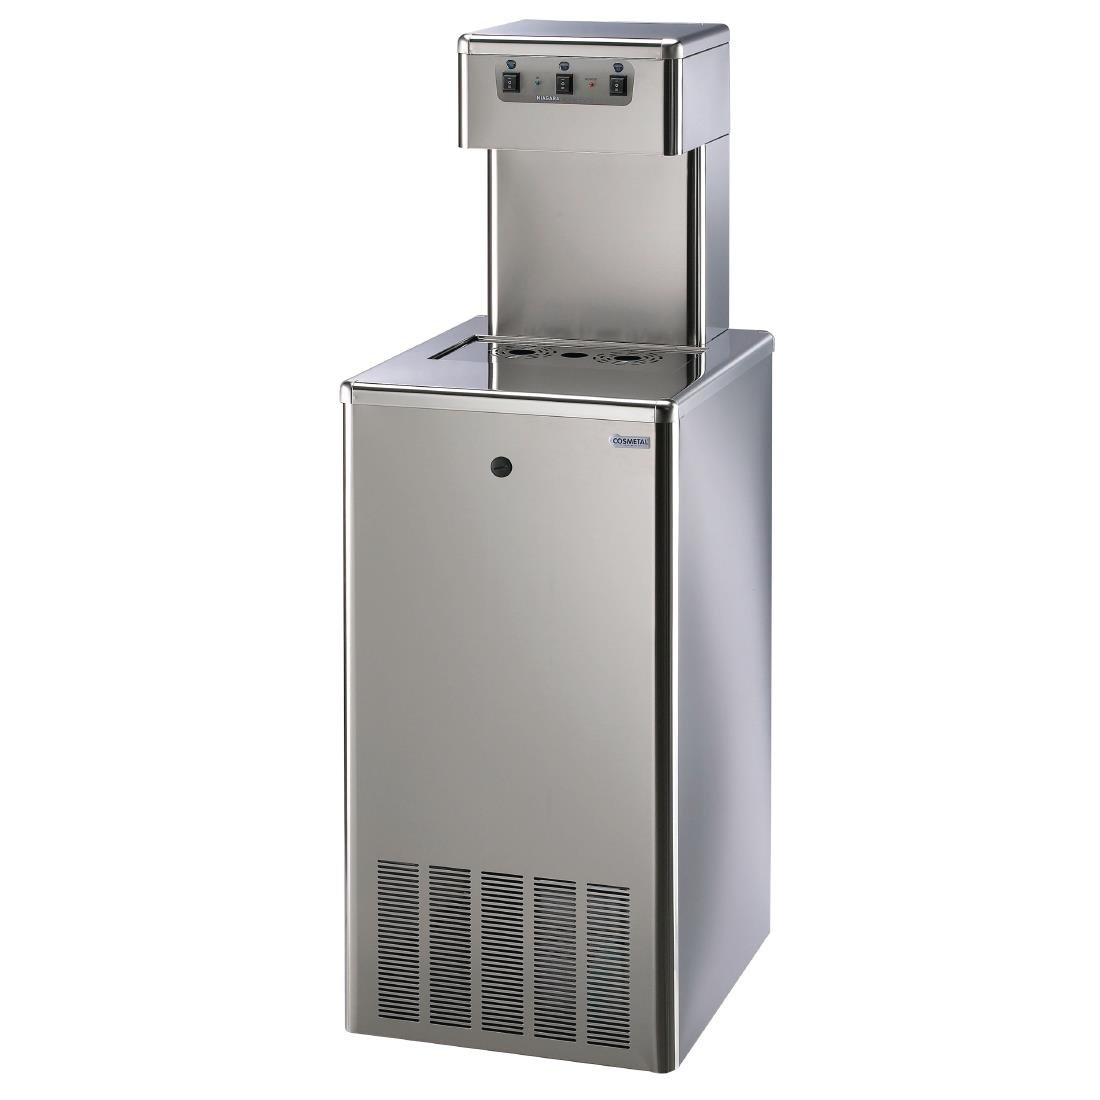 Image of Cosmetal Floor Standing Niagara Water Cooler 120 IB AC with Install Kit